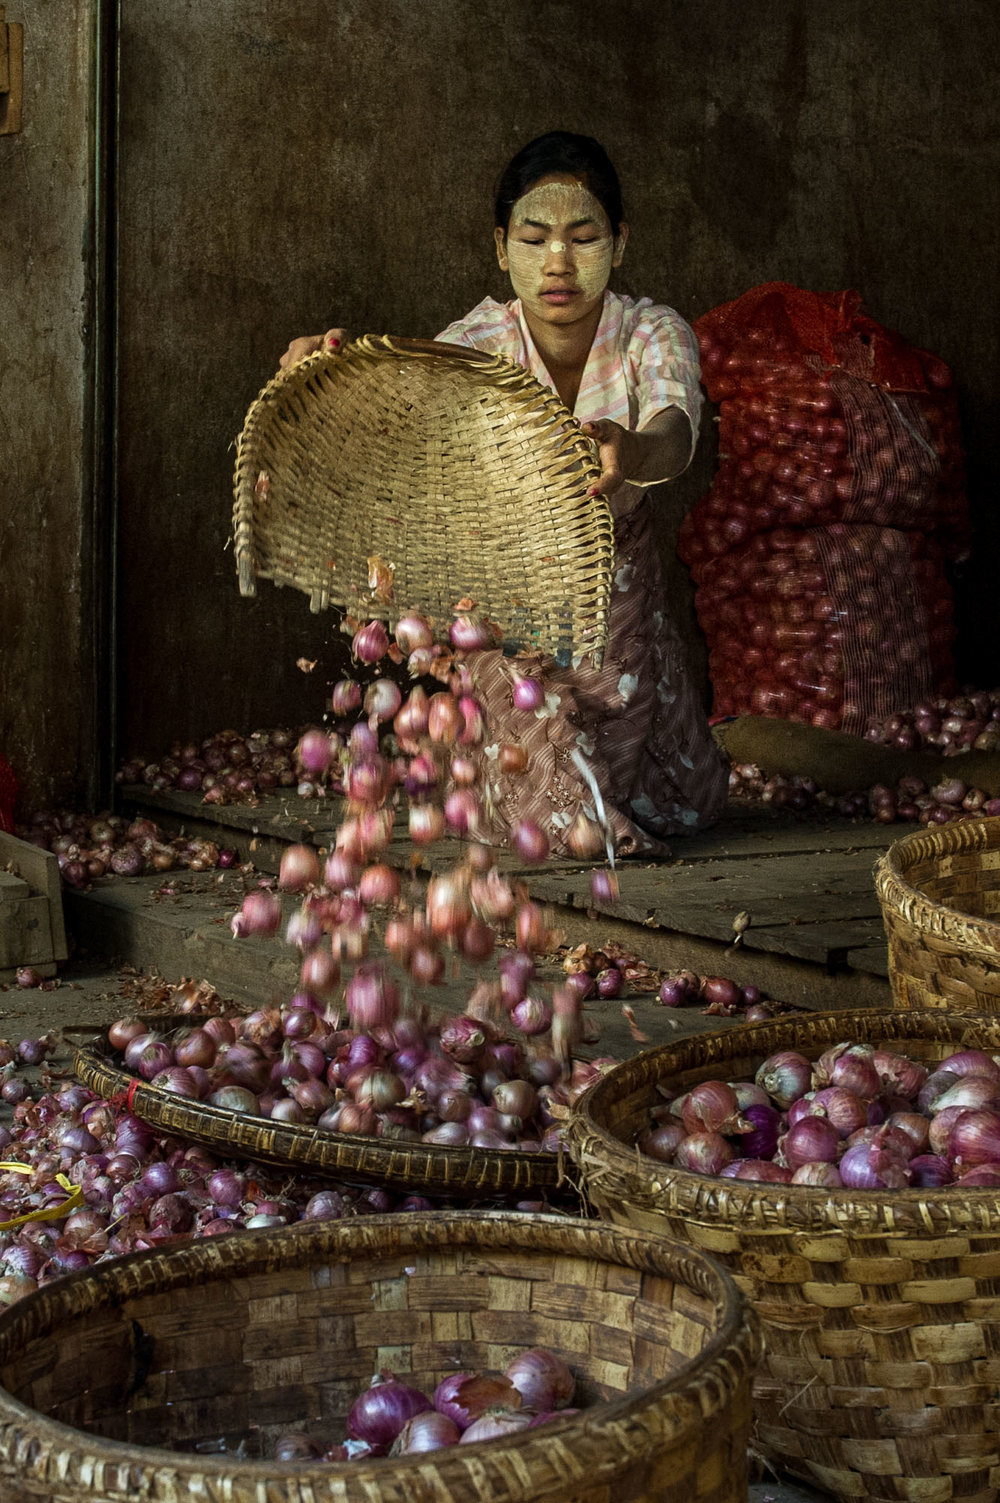 Female market vendor cleaning onions by throwing them from one basket to another. Bagan, Myanmar.